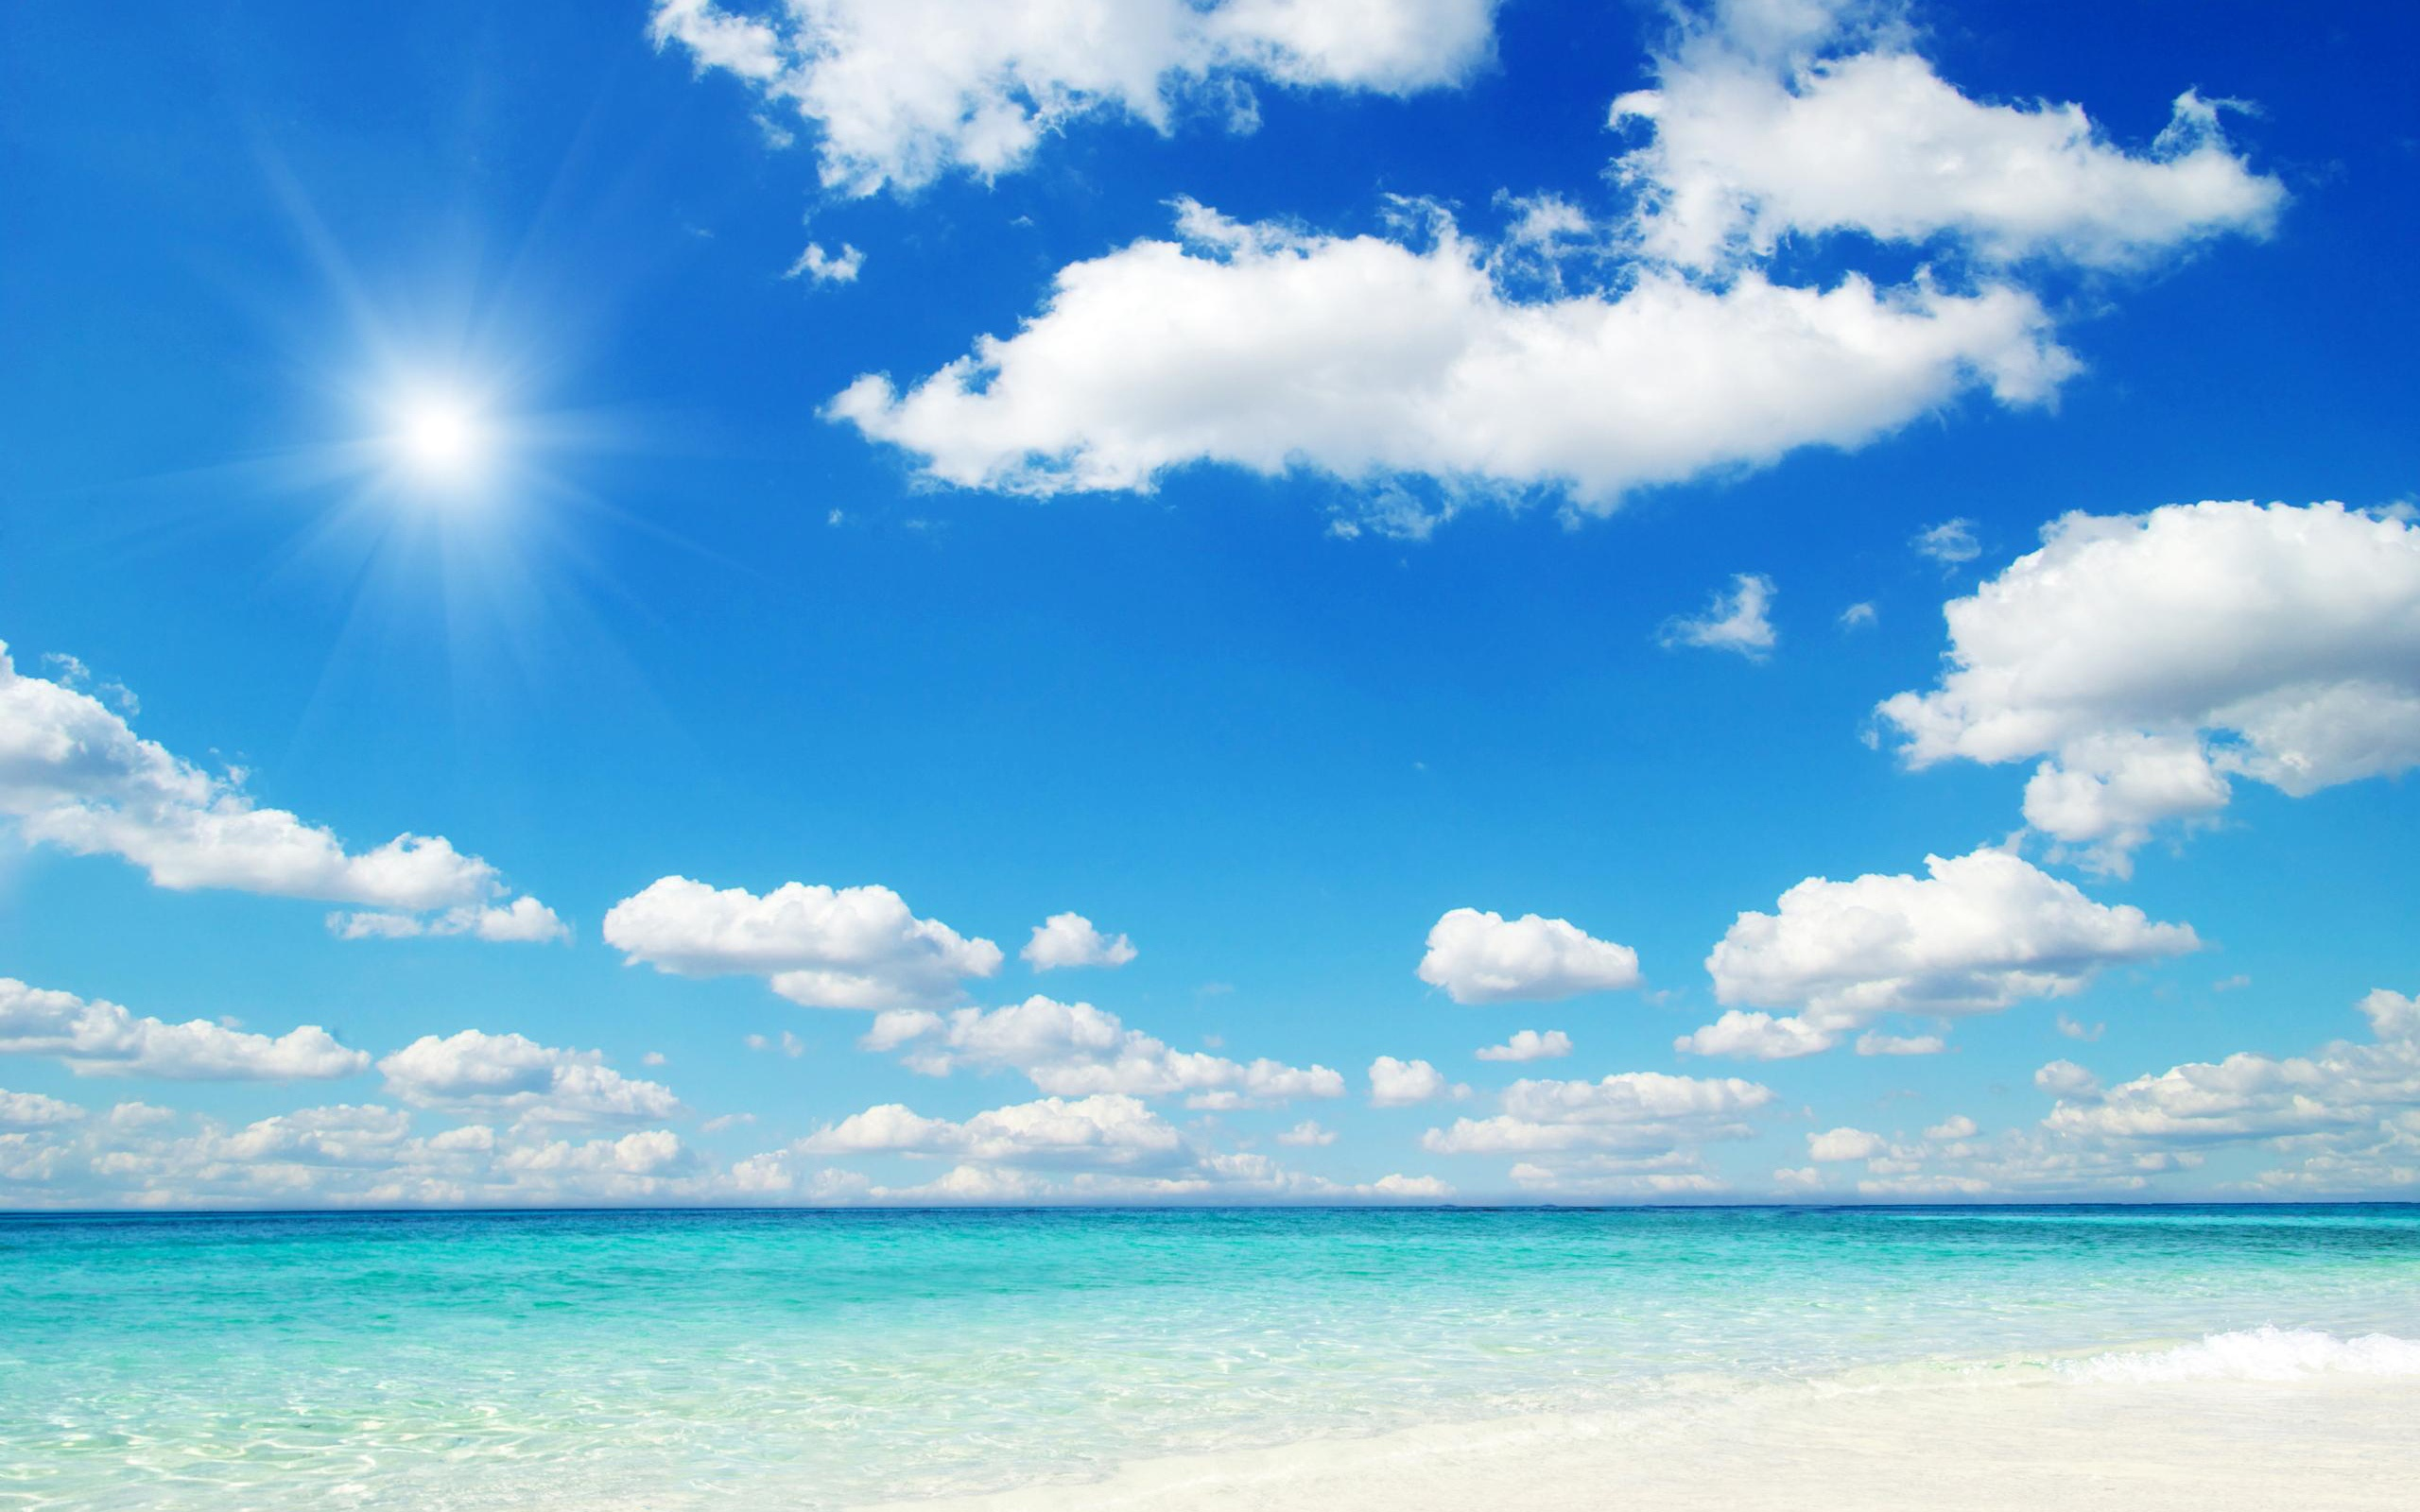 Beach Wallpaper Widescreen Awesome